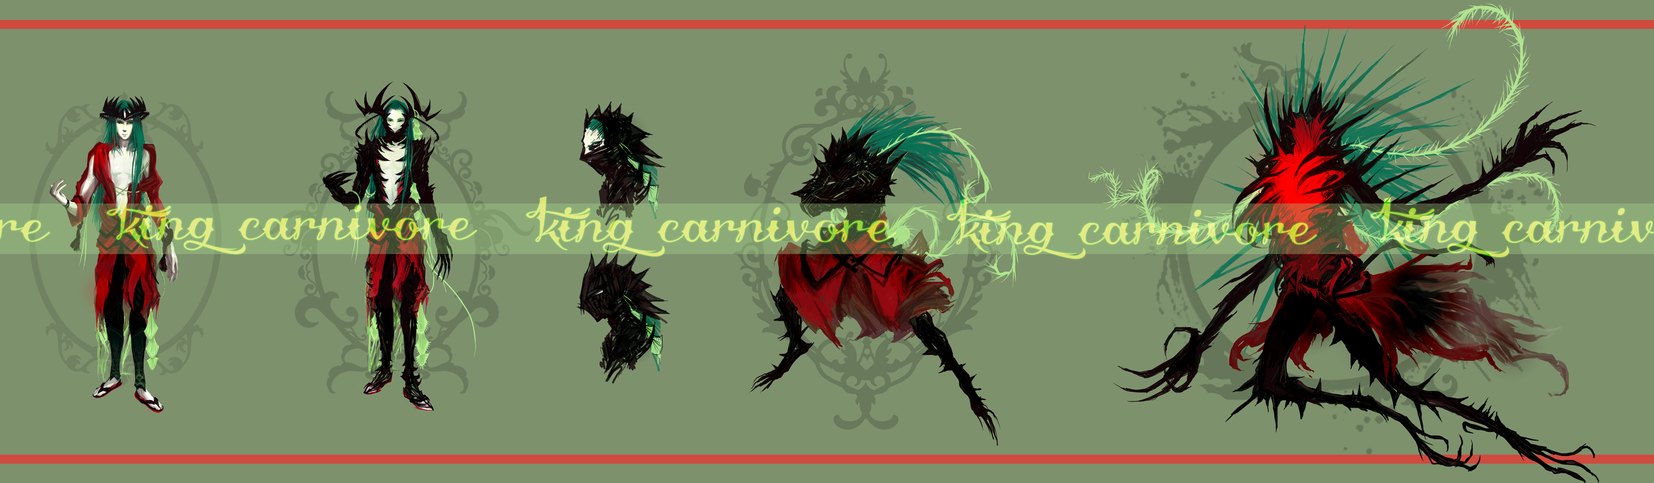 KING CARNIVORE adopt [CLOSED] by ensoul